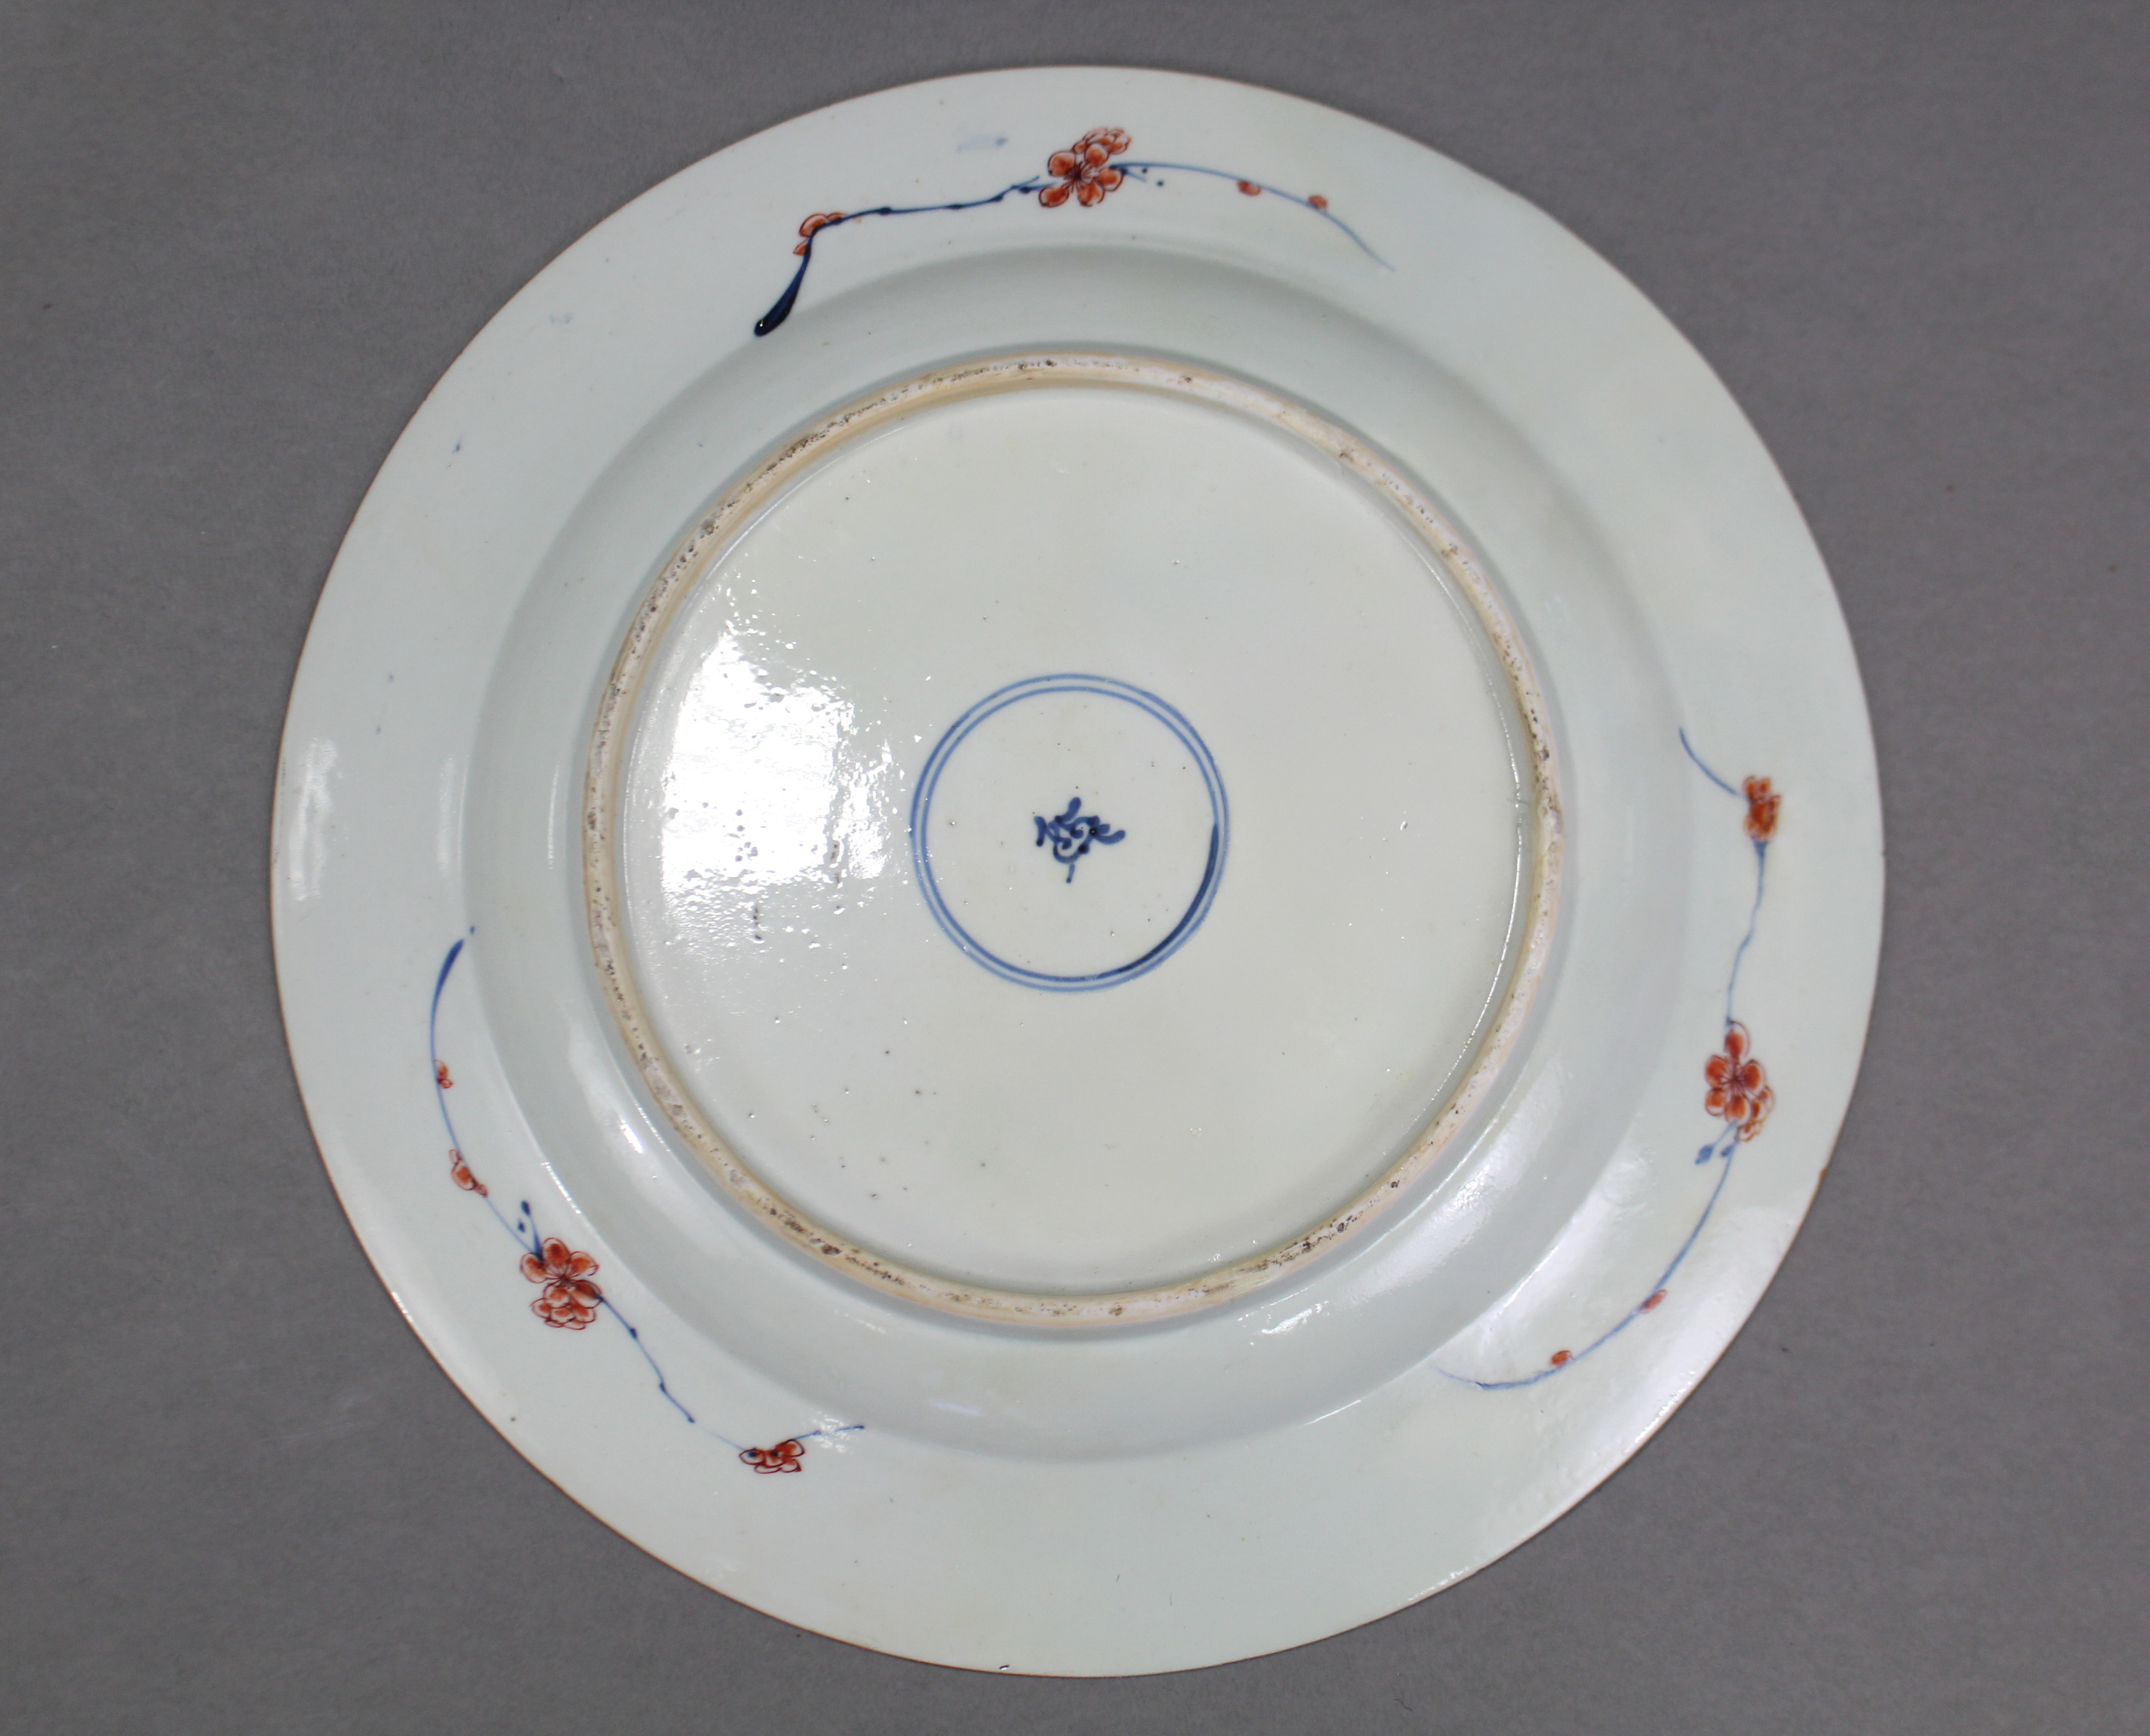 An 18th century Chinese Imari porcelain charger, the centre with landscape decoration & stylised - Image 2 of 2